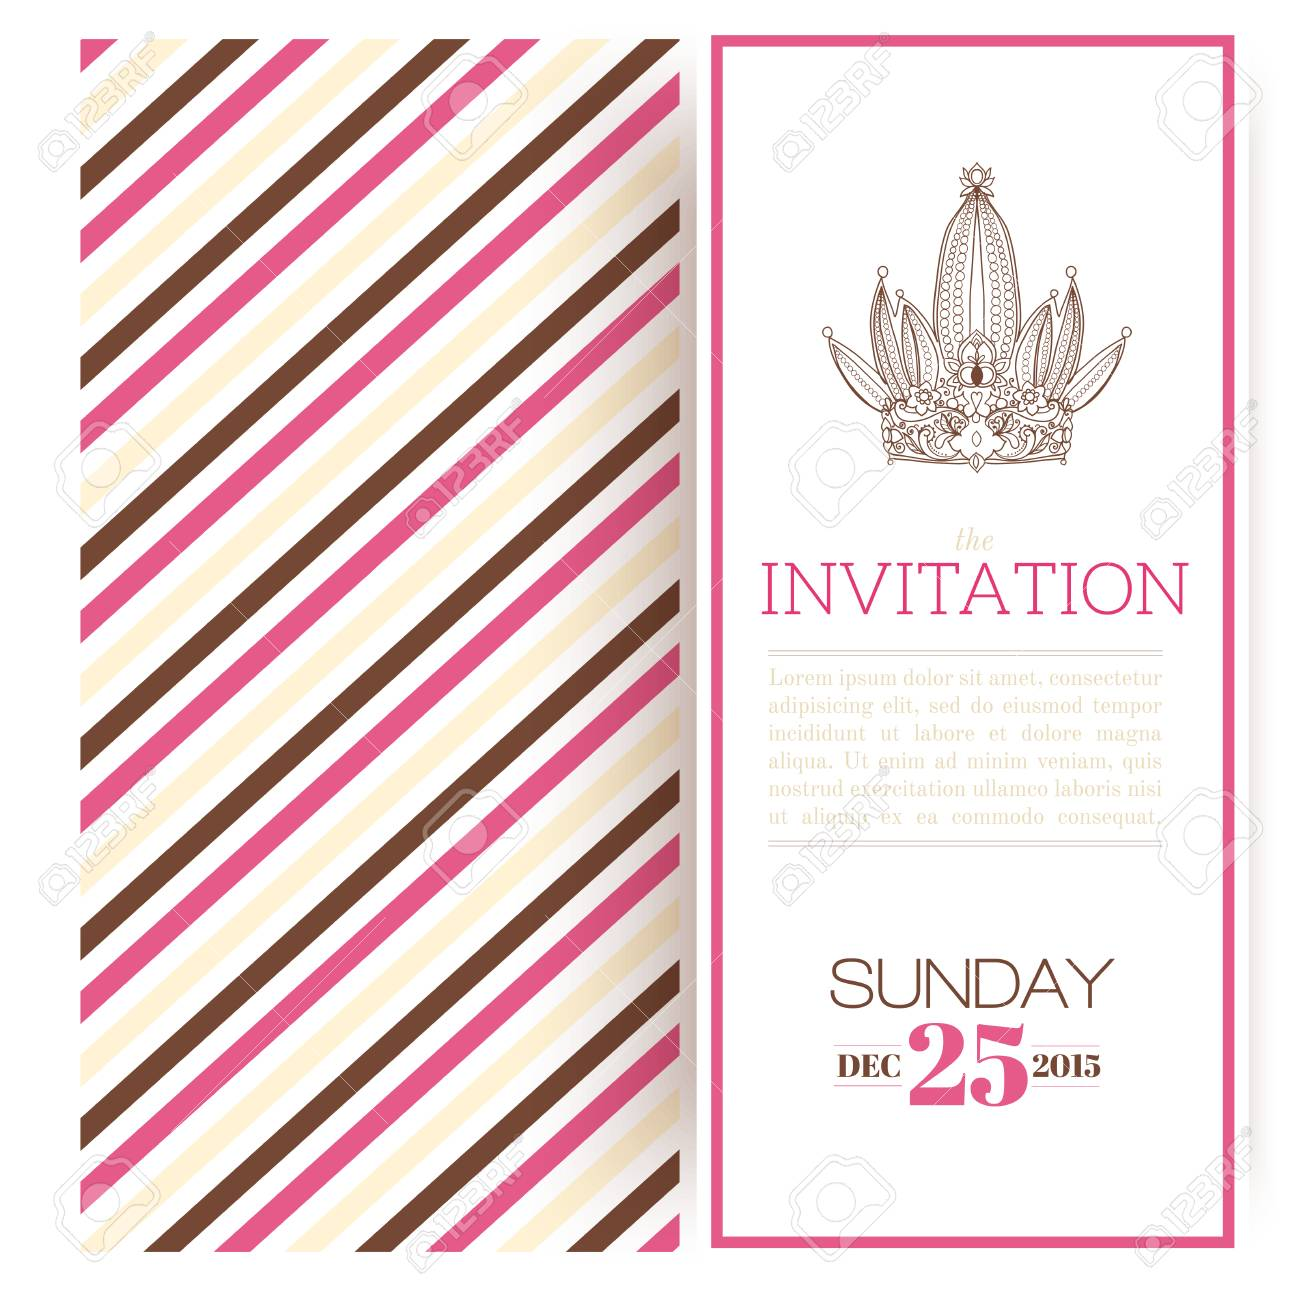 Striped princess invitation template vector illustration Stock Vector - 24474274